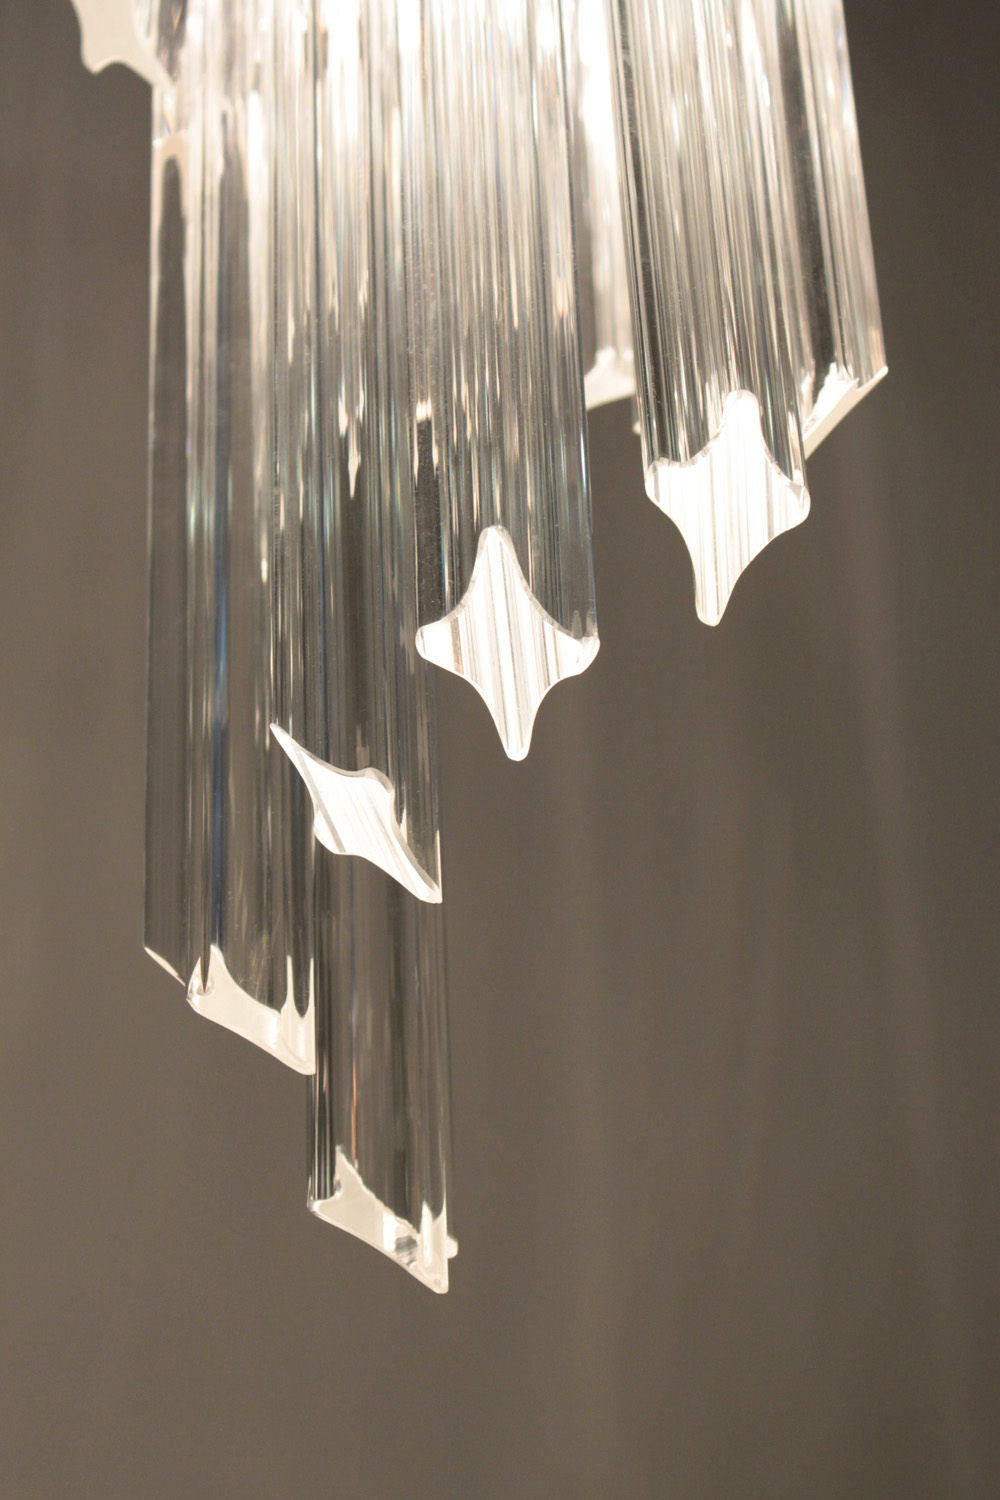 Venini 65 medium spiral glas rods chandelier detail hires.jpg